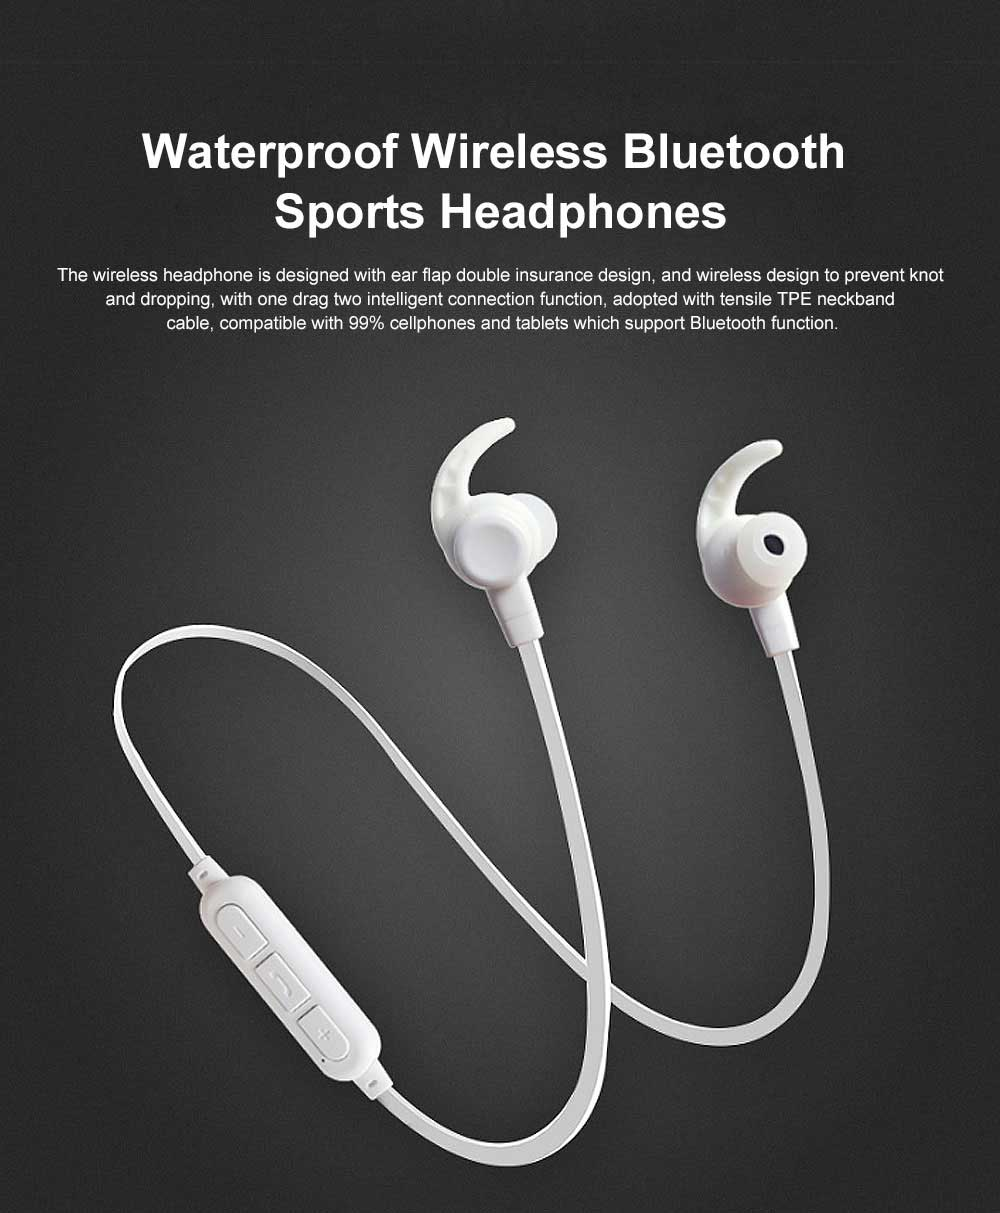 New Waterproof Wireless Bluetooth Earphone Headphones In-ear Neckband Headset Sports Supplies For iPhone Samsung 0